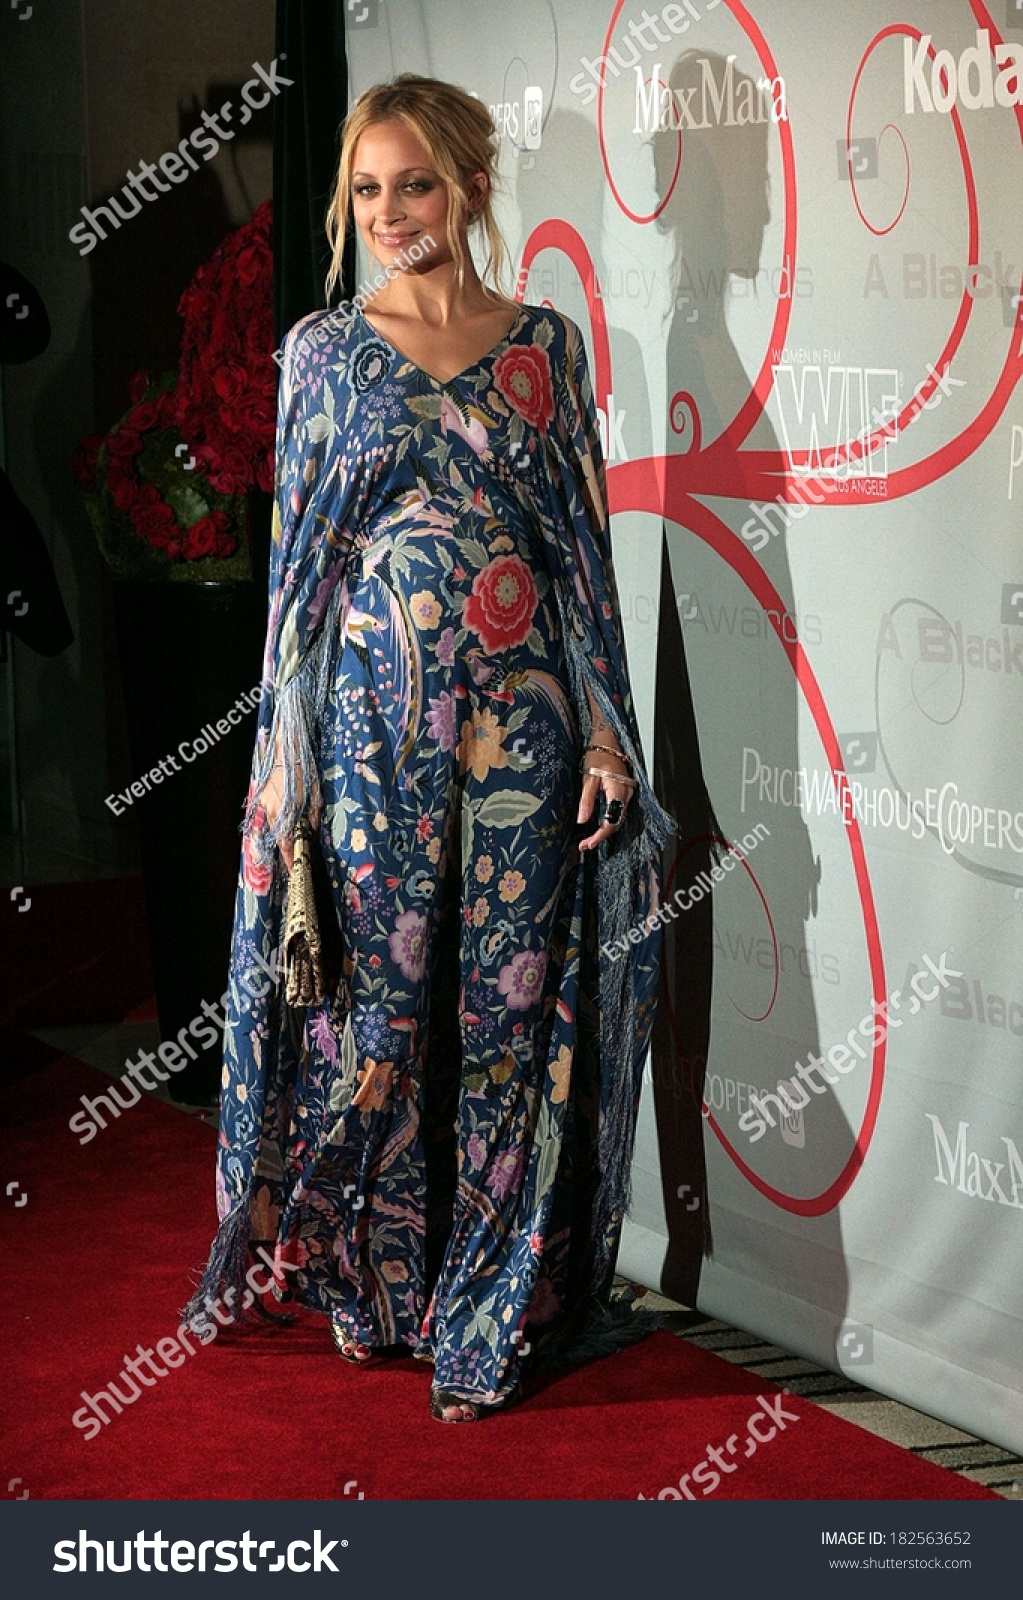 Nicole Richie In Vintage Missoni Dress At The Women In Film 2008 ...